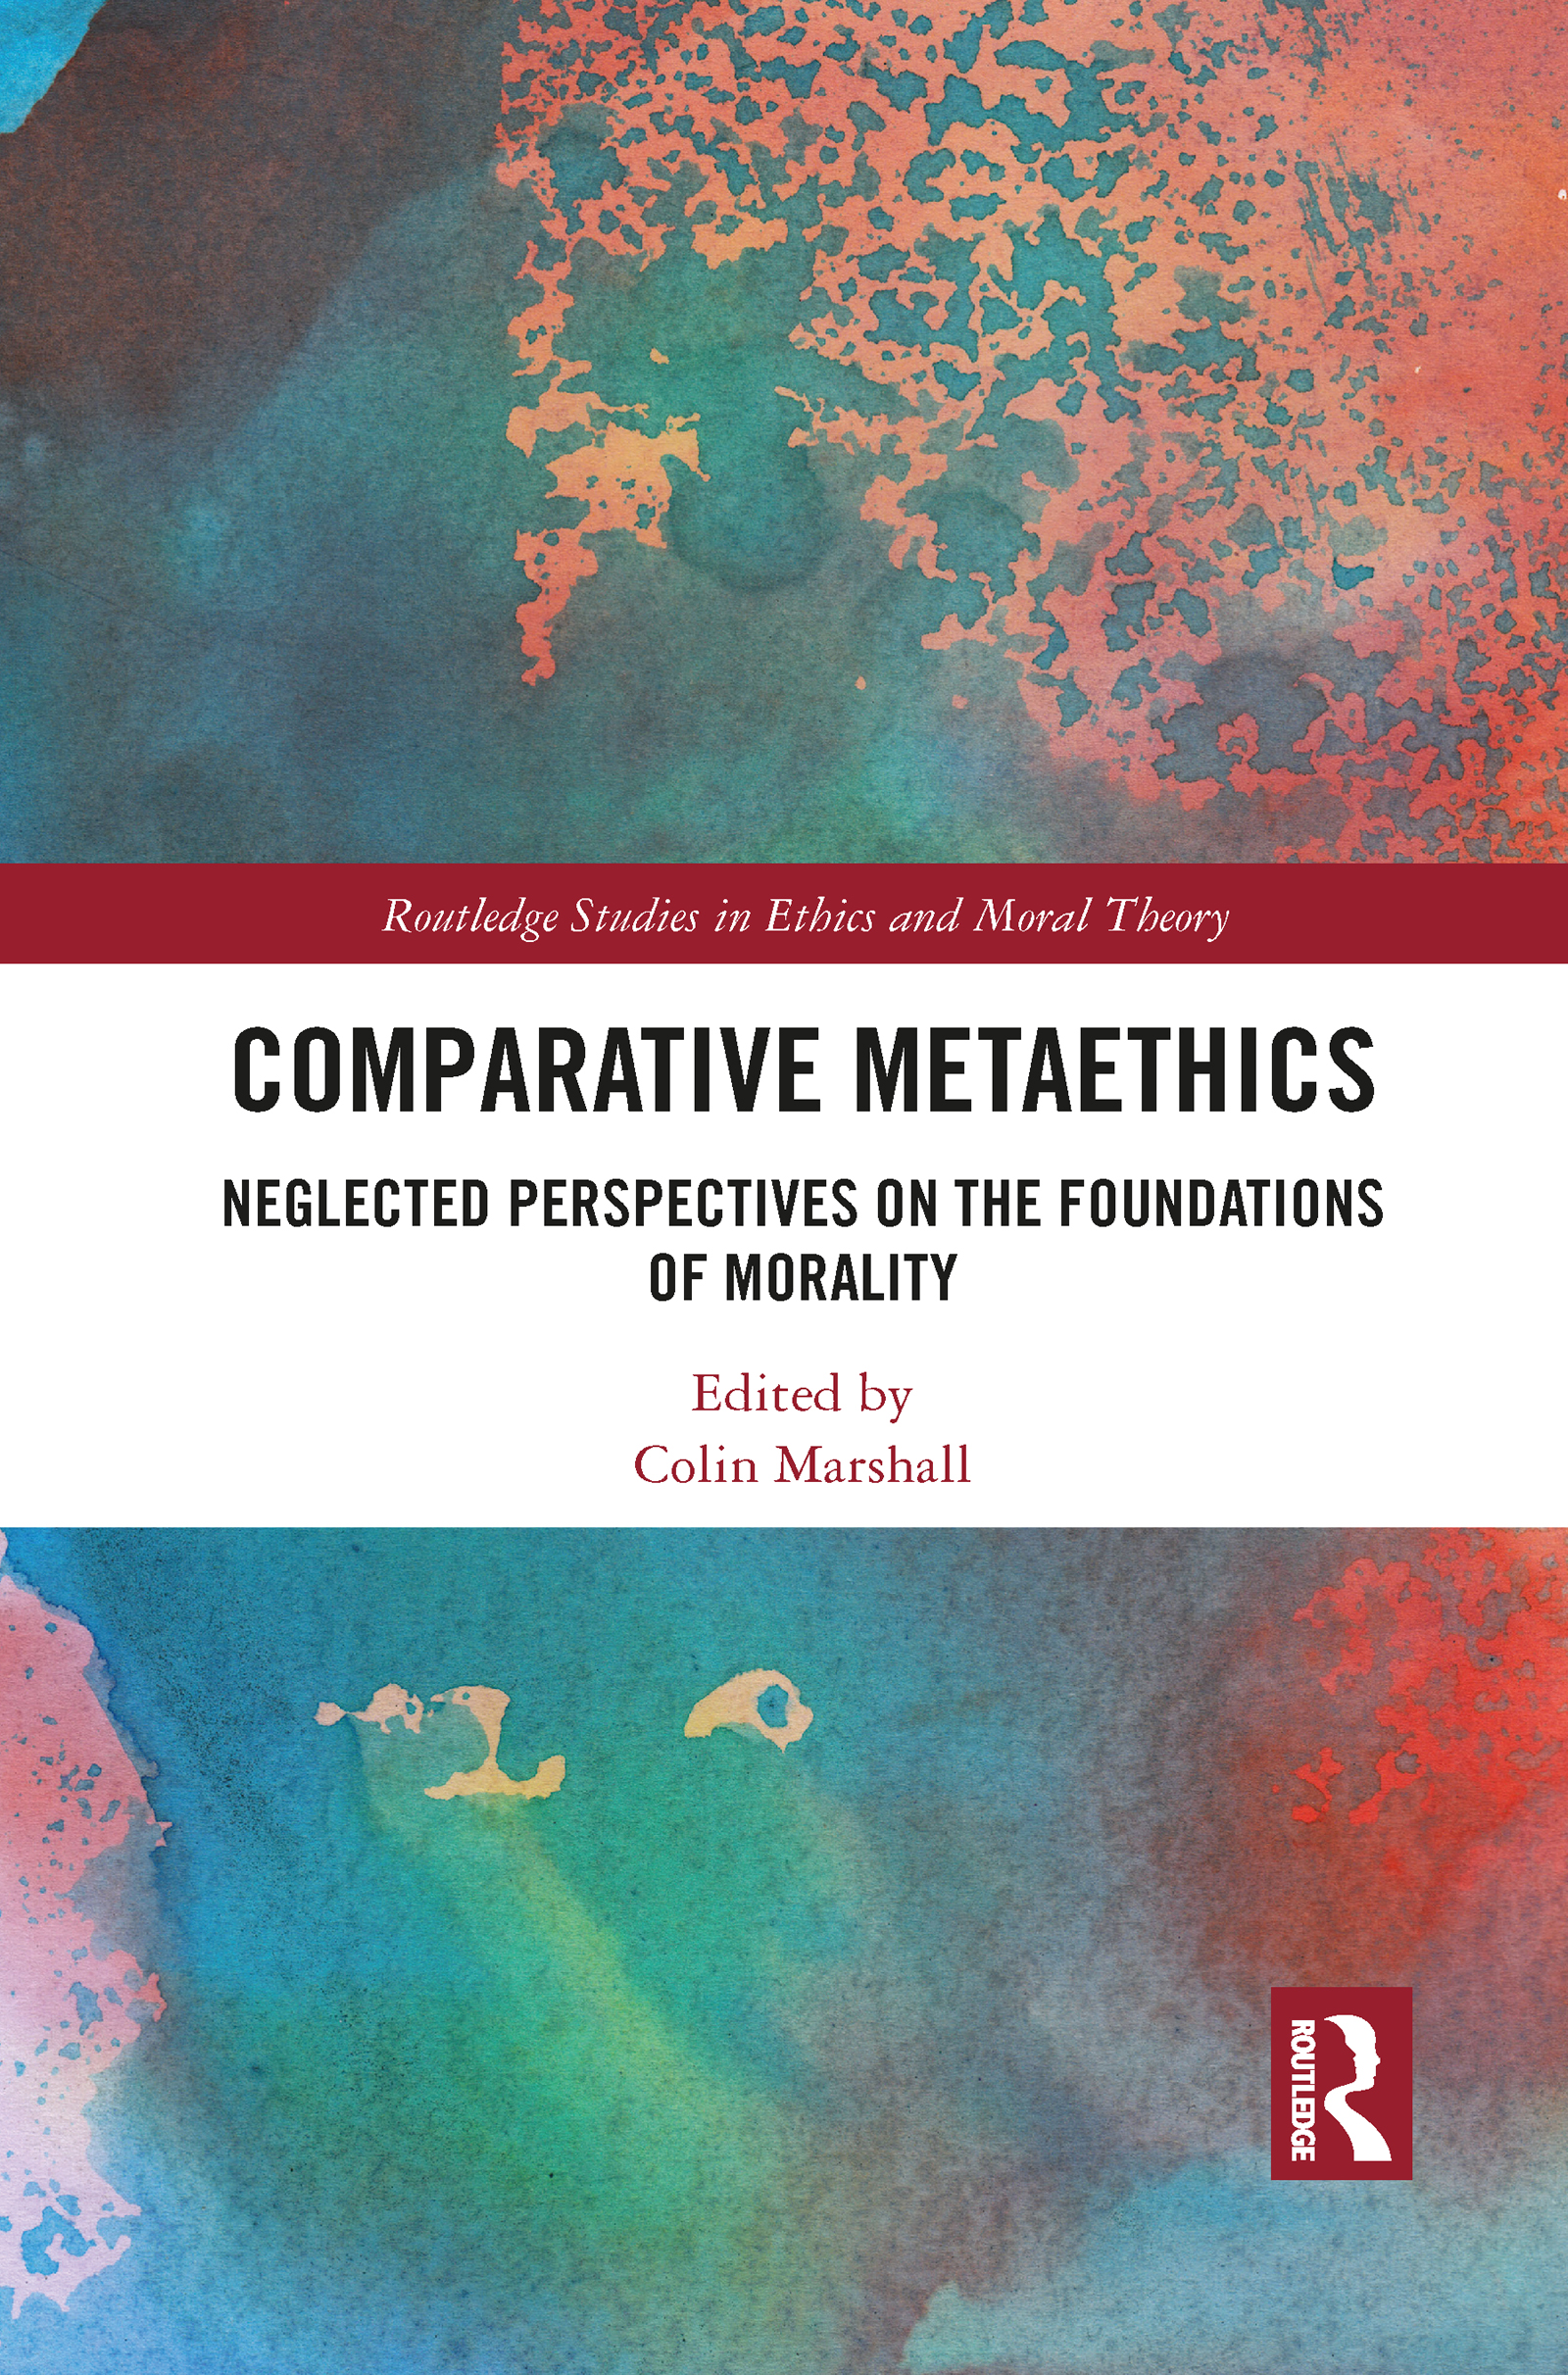 Comparative Metaethics